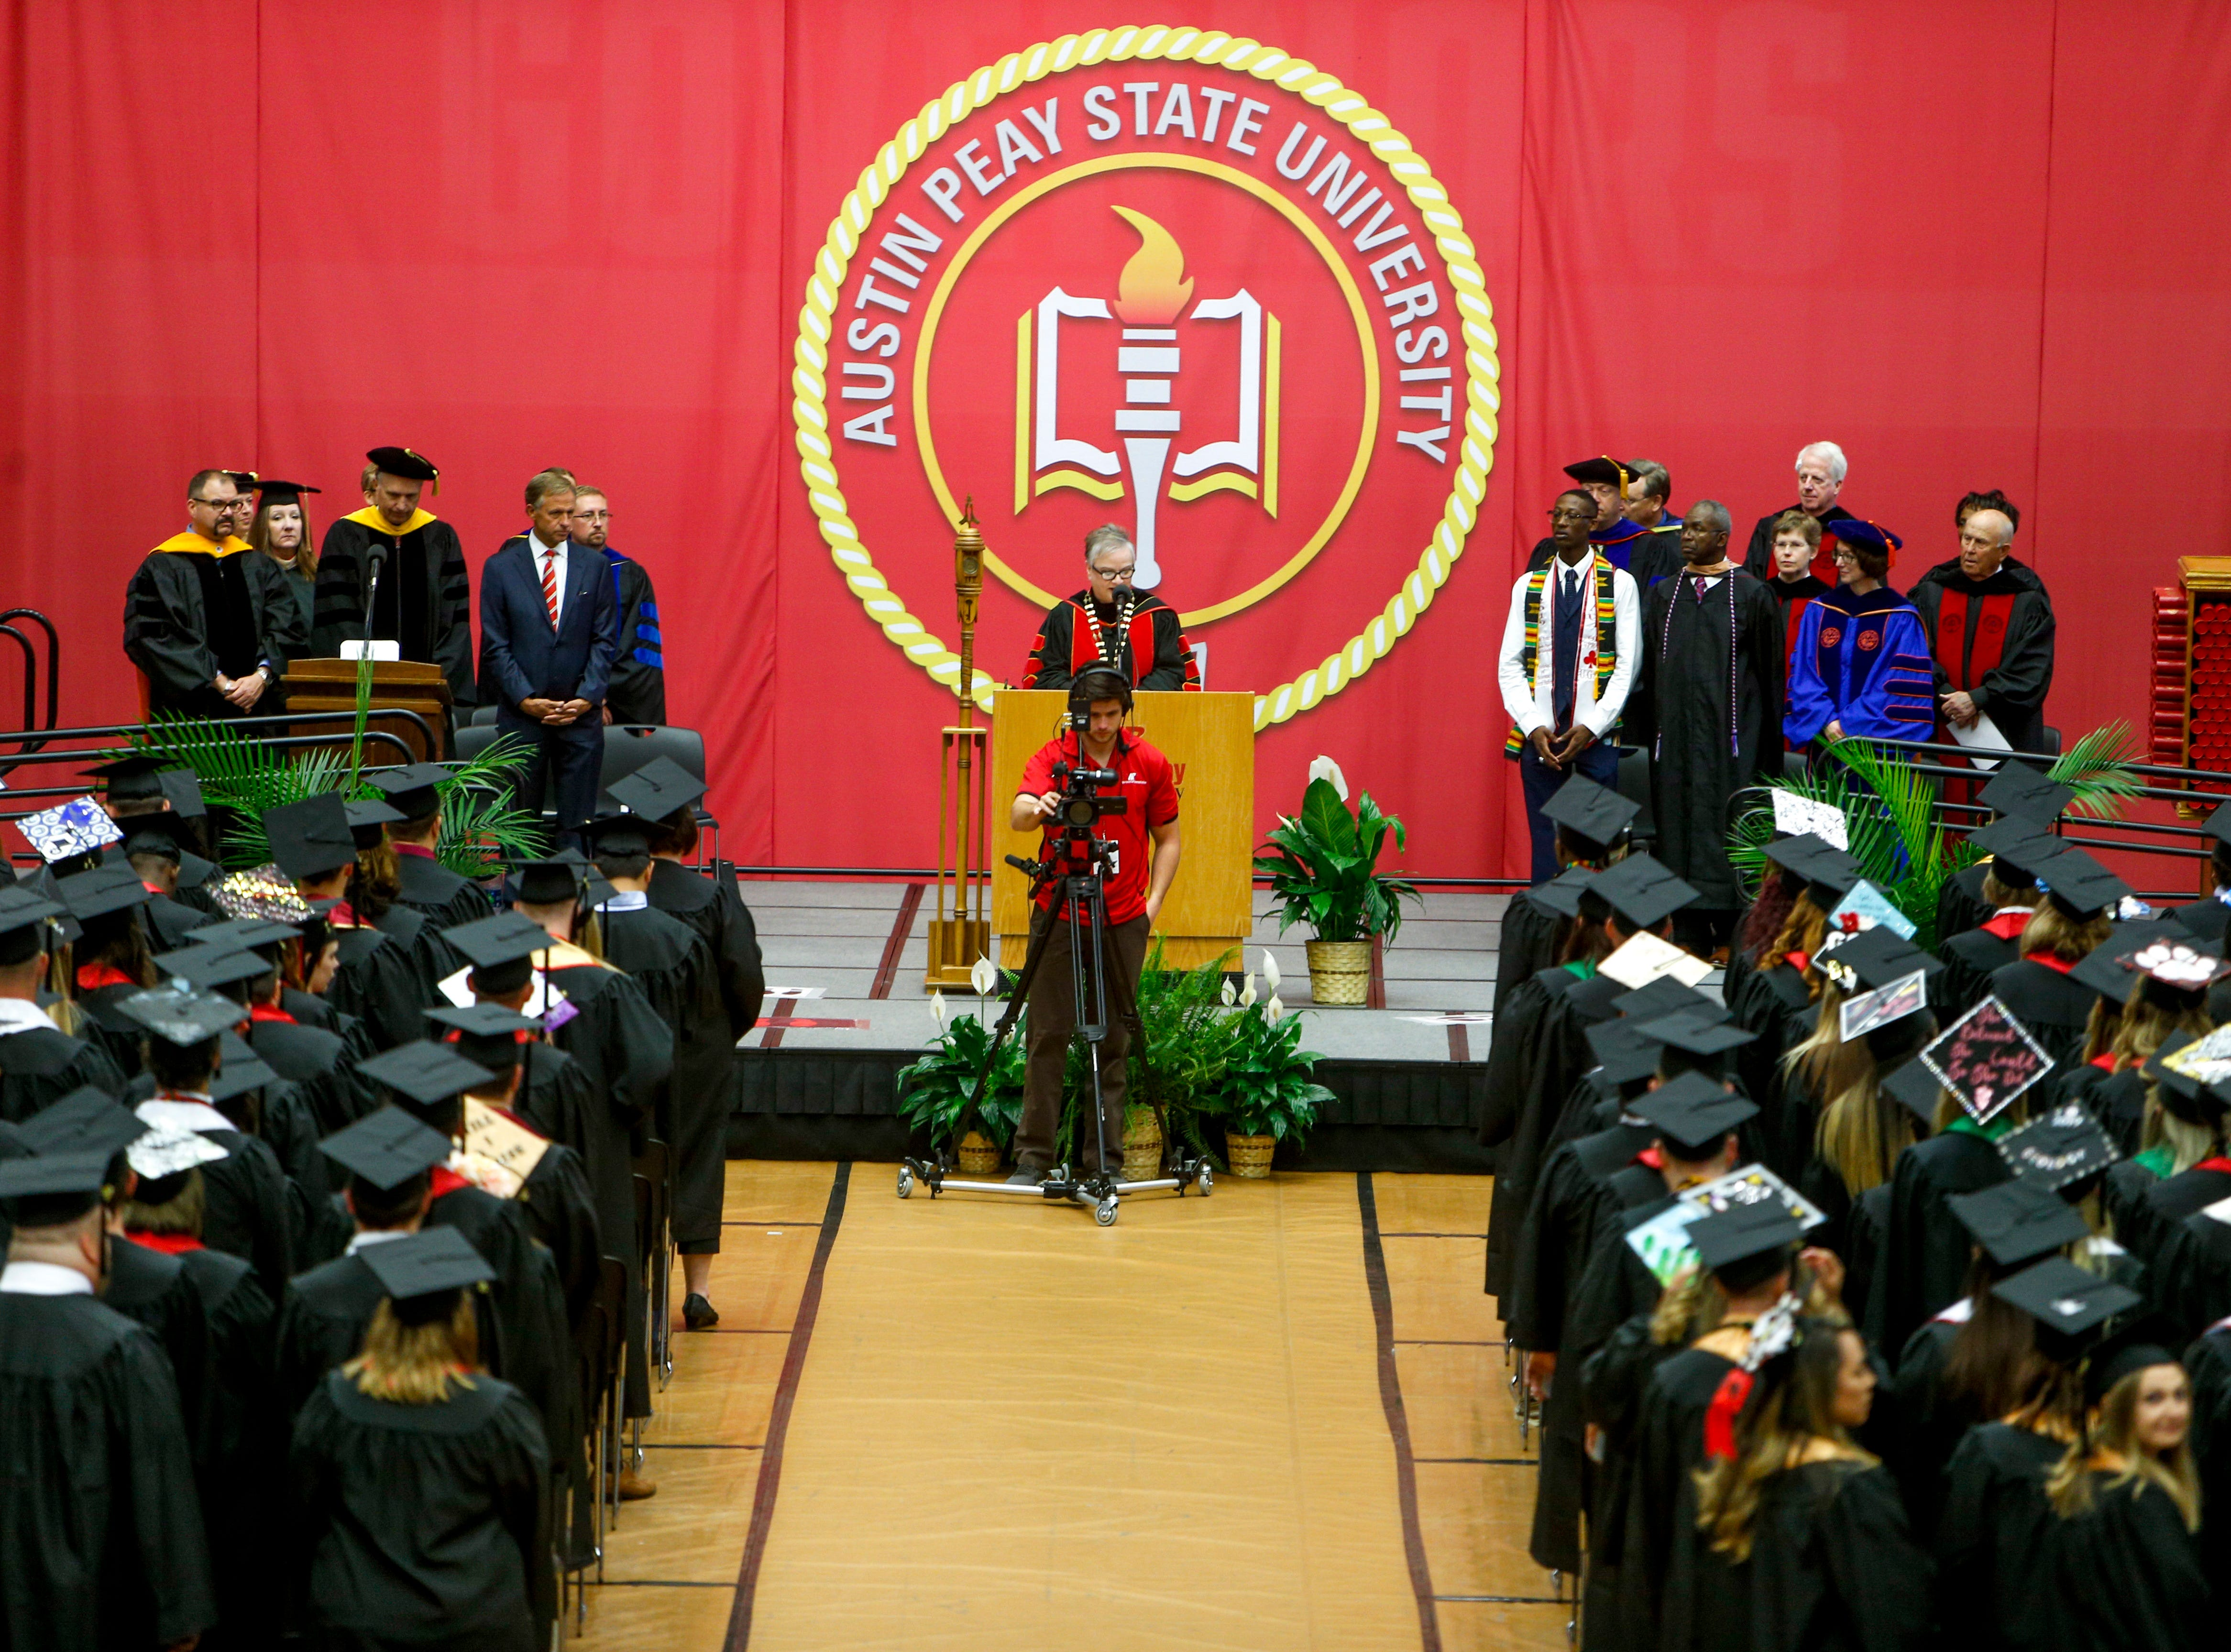 Speakers welcome students at the Austin Peay spring commencement ceremony 2019 for College of Business and College of STEM at Winfield Dunn Center in Clarksville, Tenn., on Friday, May 3, 2019.